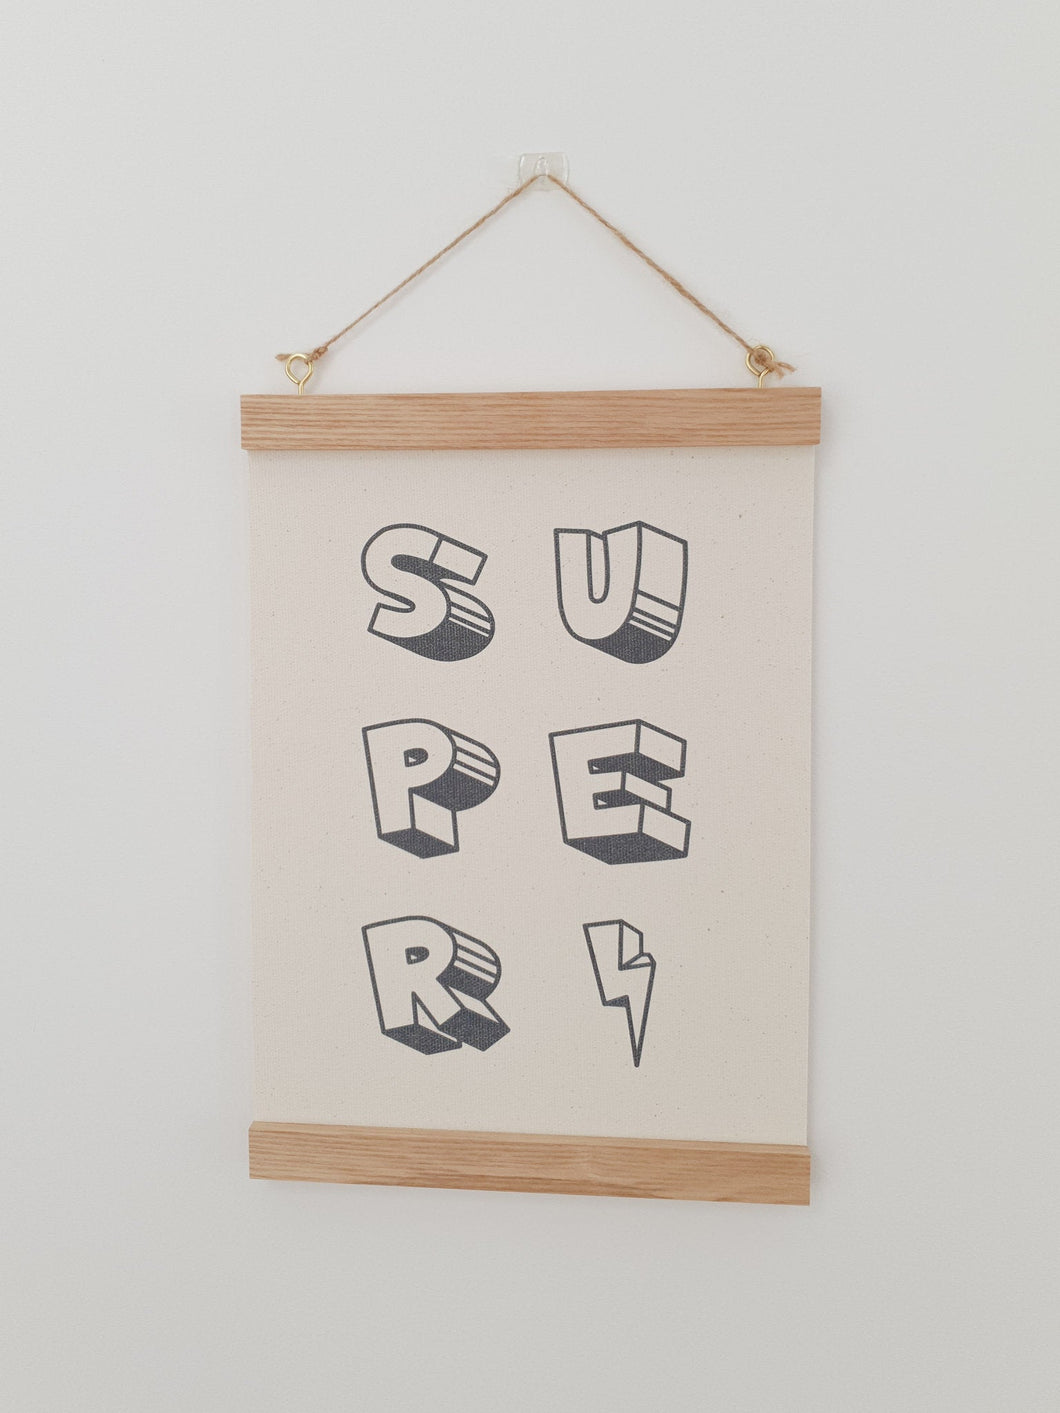 Super hero canvas print with wooden wall hanger - Super hero nursery accessory - Super hero bedroom accessory - Super hero Print